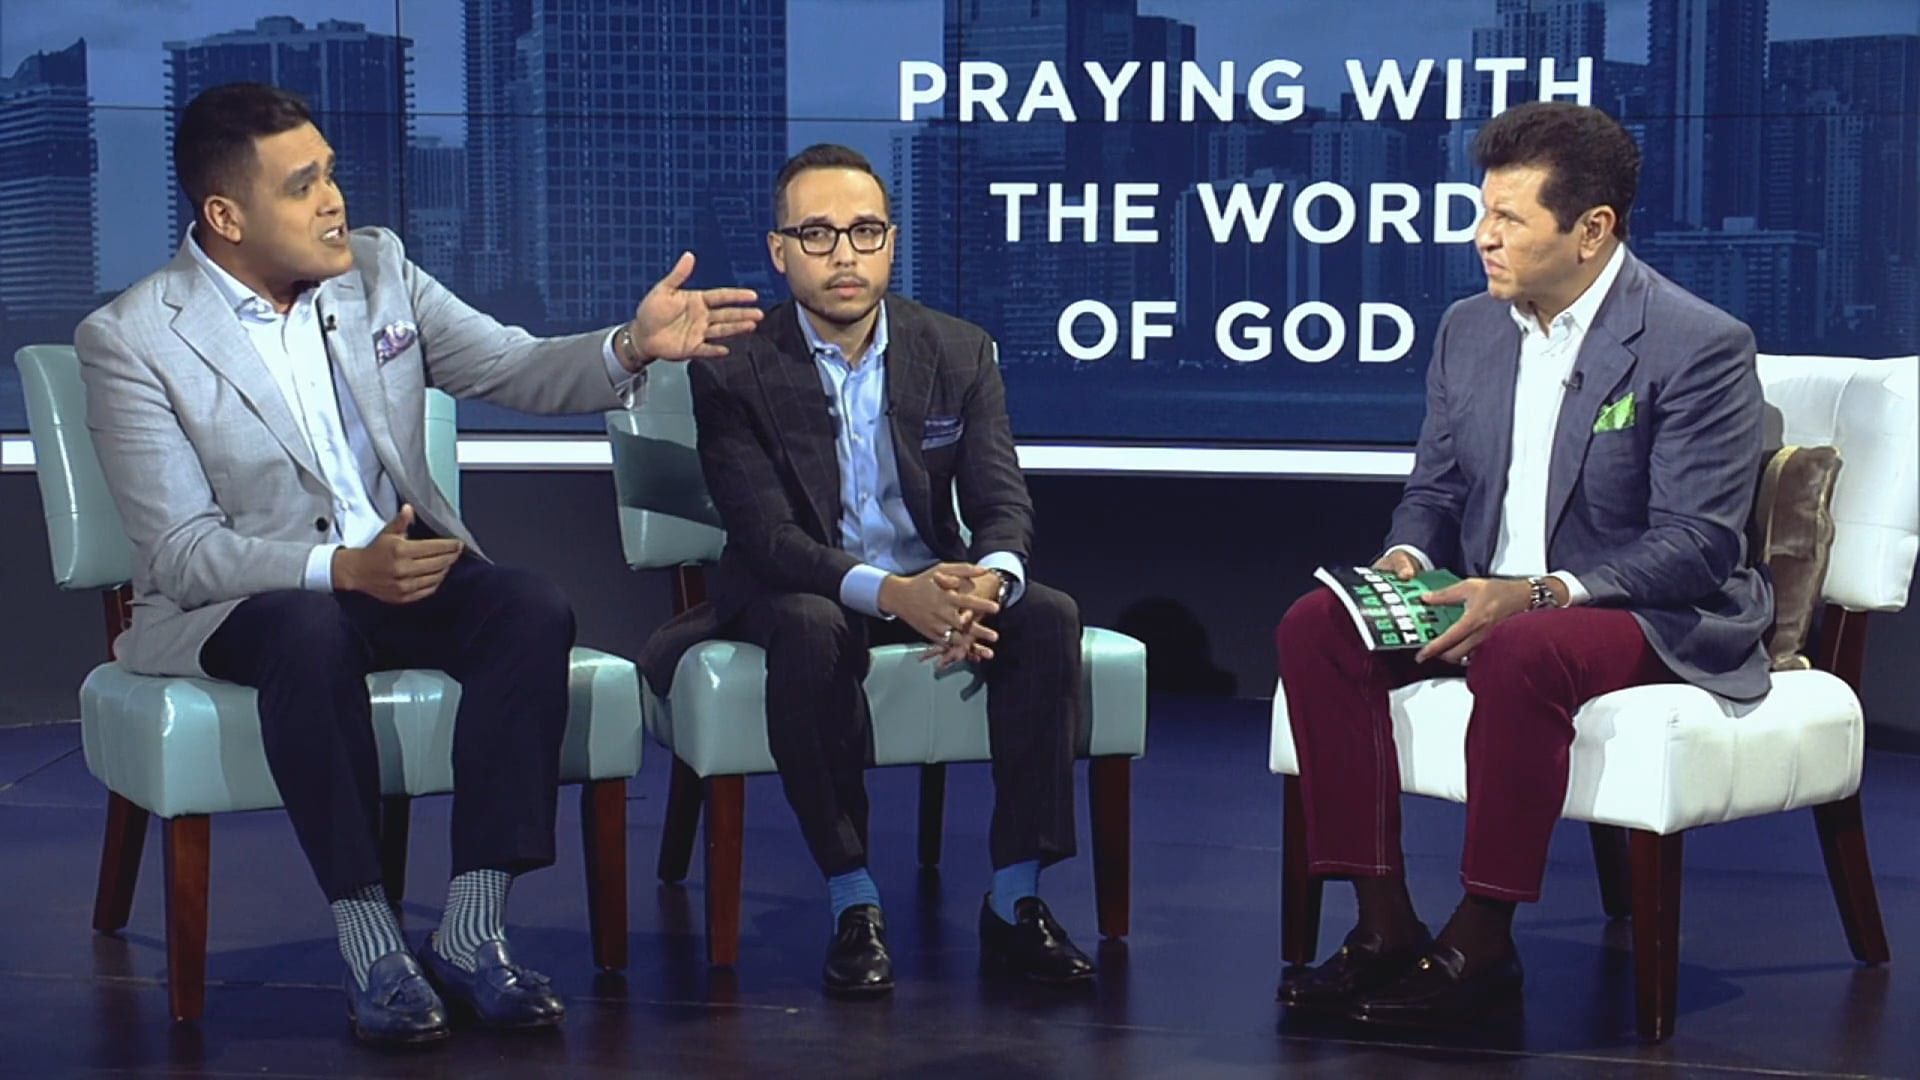 Watch Praying With The Word of God